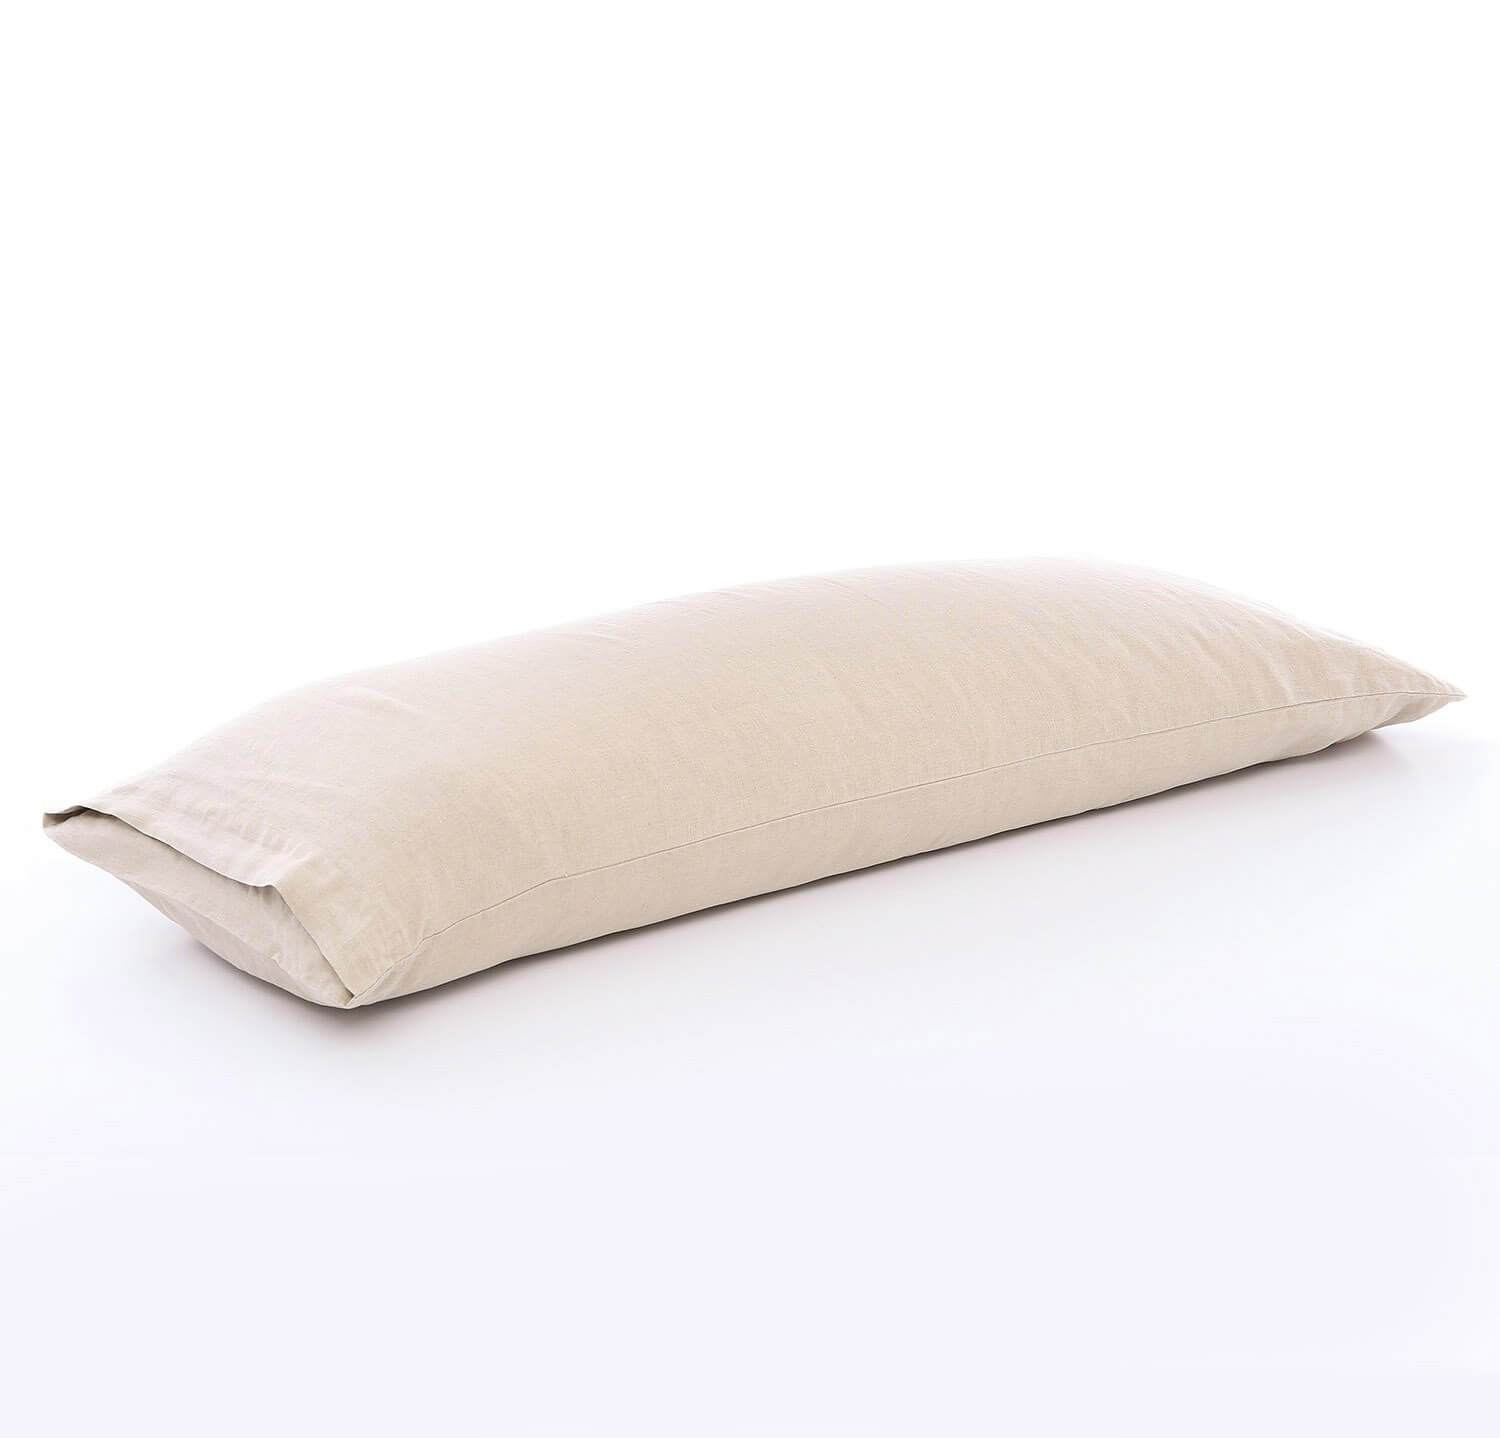 100% linen body pillow cover smooth linen natural un-dyed light brown beige color